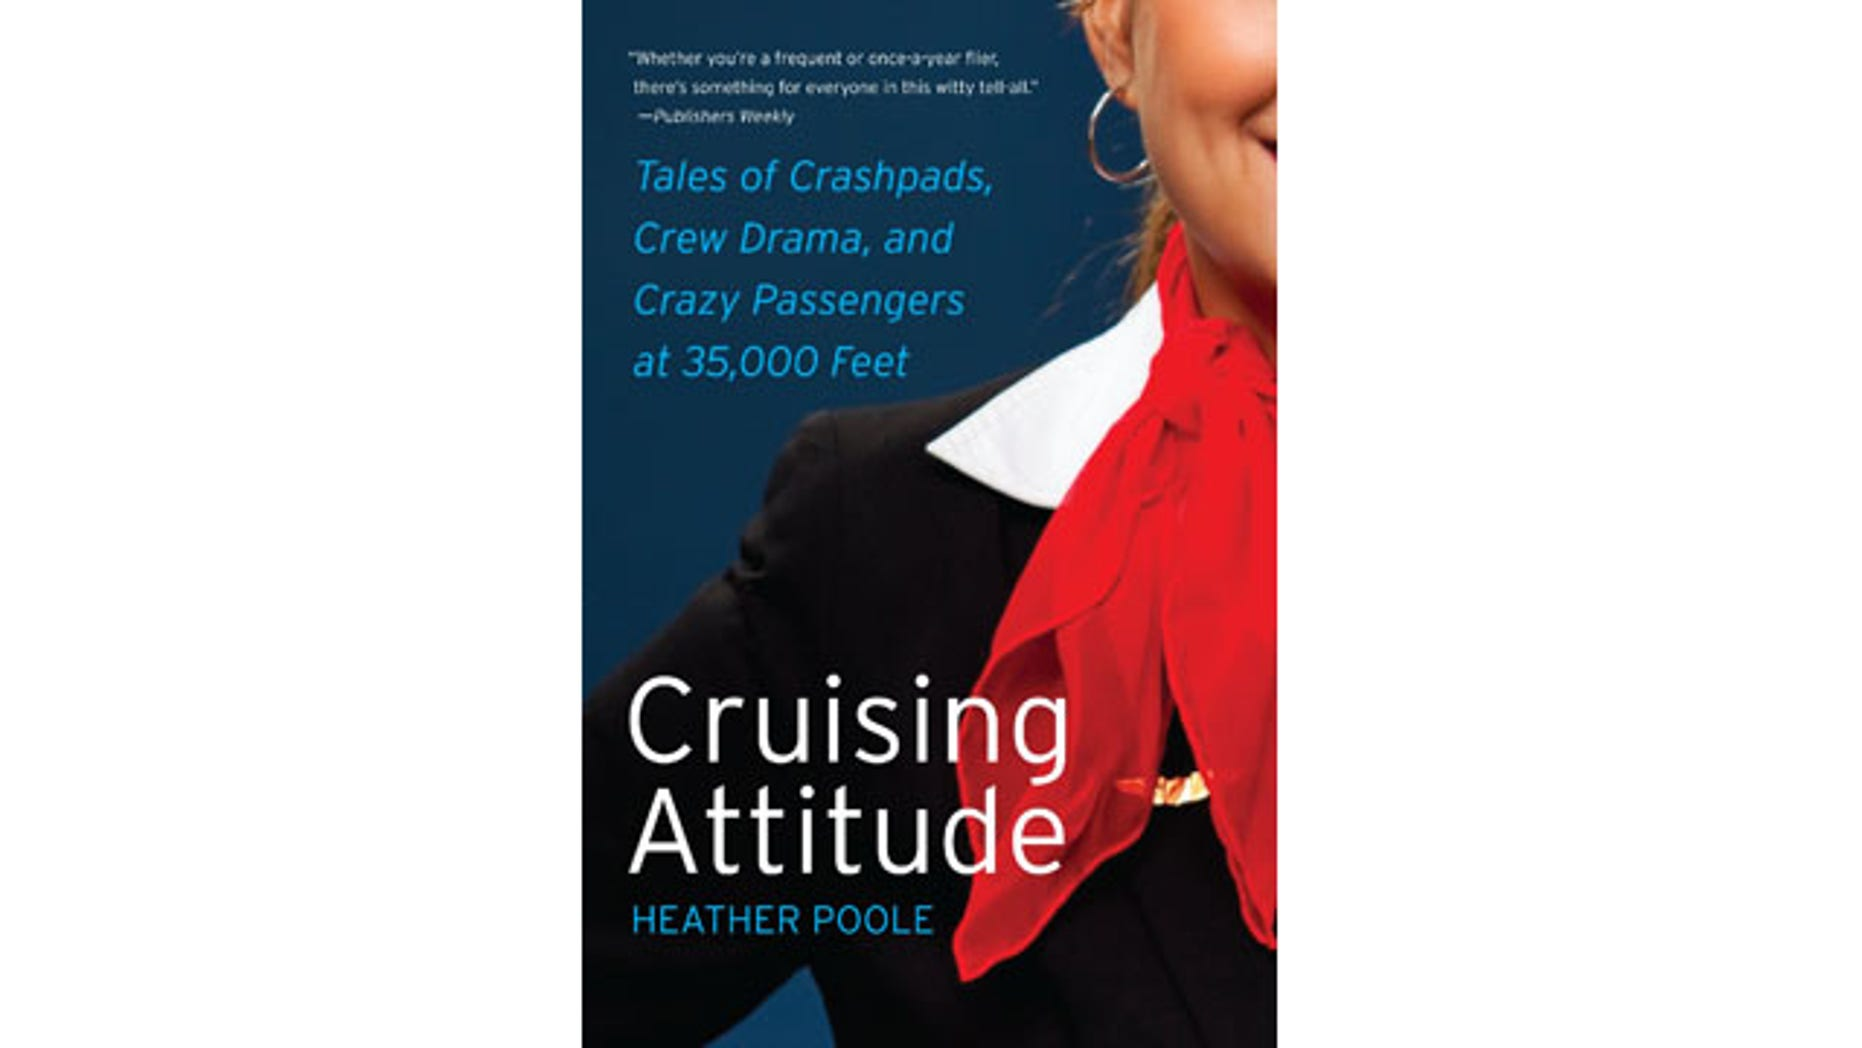 """Author Heather Poole is shown on the cover of her book, """"Crusing Attitude: Tales of Crashpads, Crew Drama, and Crazy Passengers at 35,000 Feet."""""""